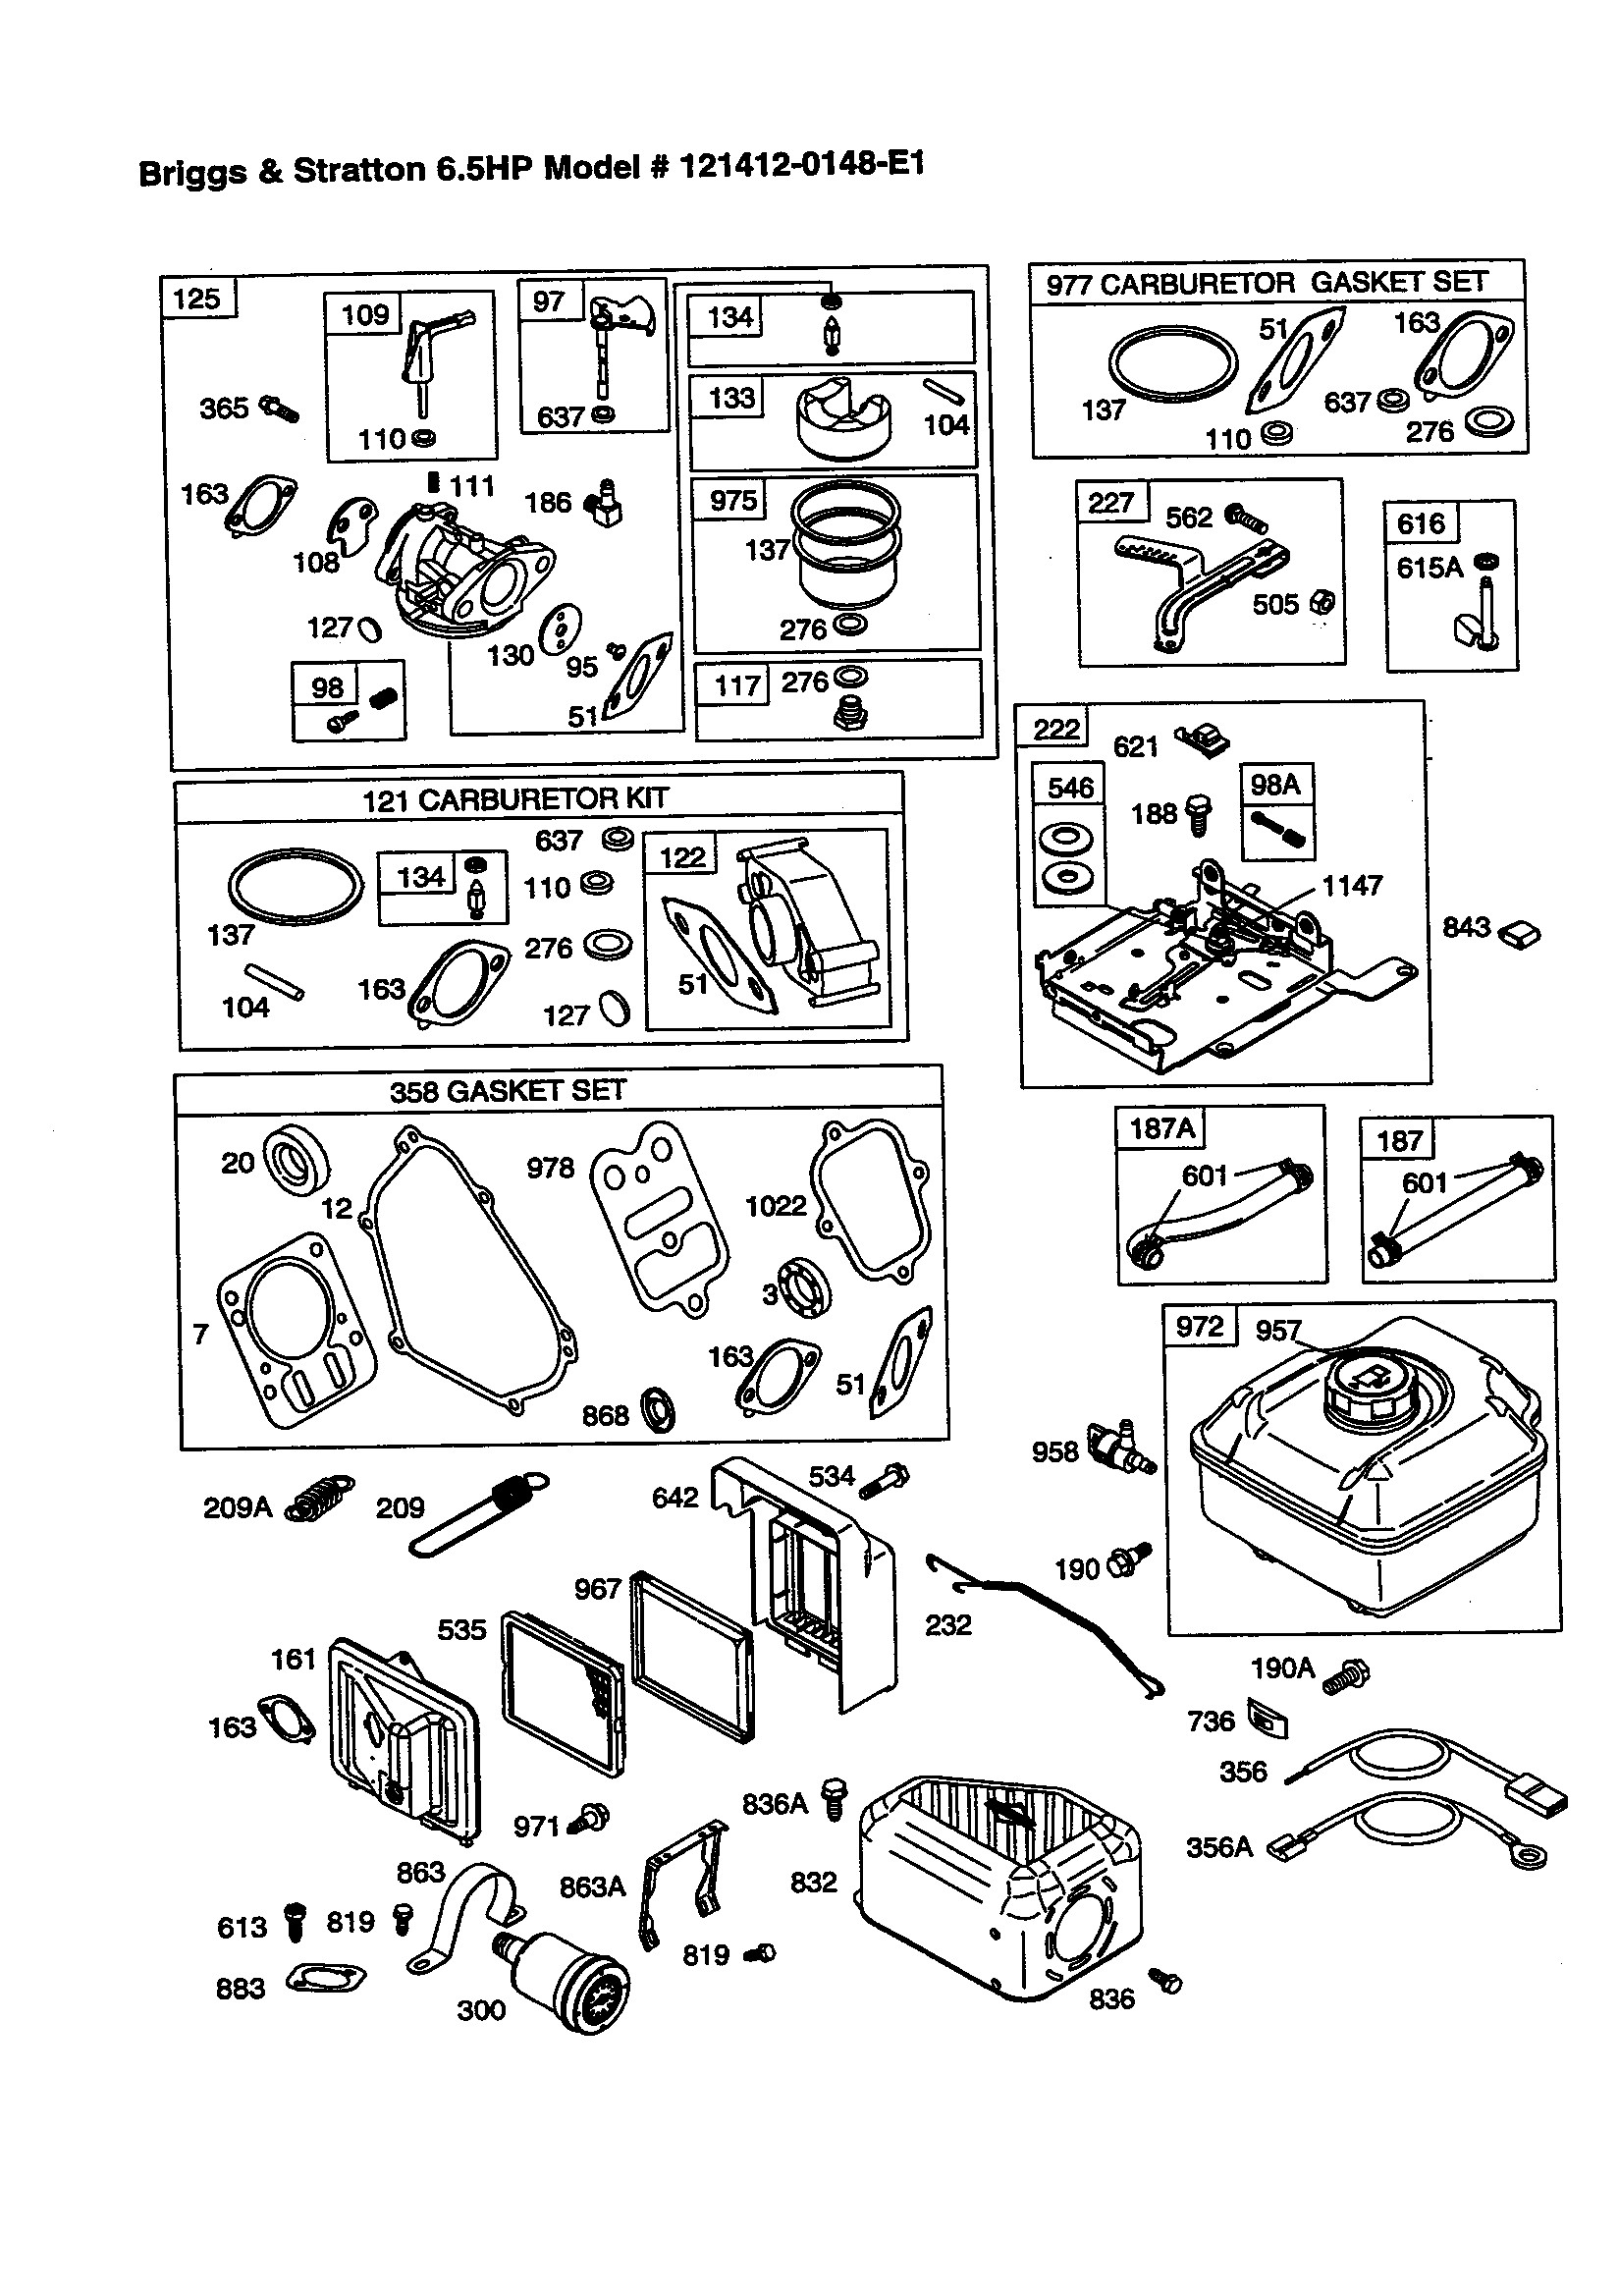 8 Hp Briggs and Stratton Engine Parts Diagram Fancy Briggs and Stratton Engine Parts Diagram Vignette Electrical